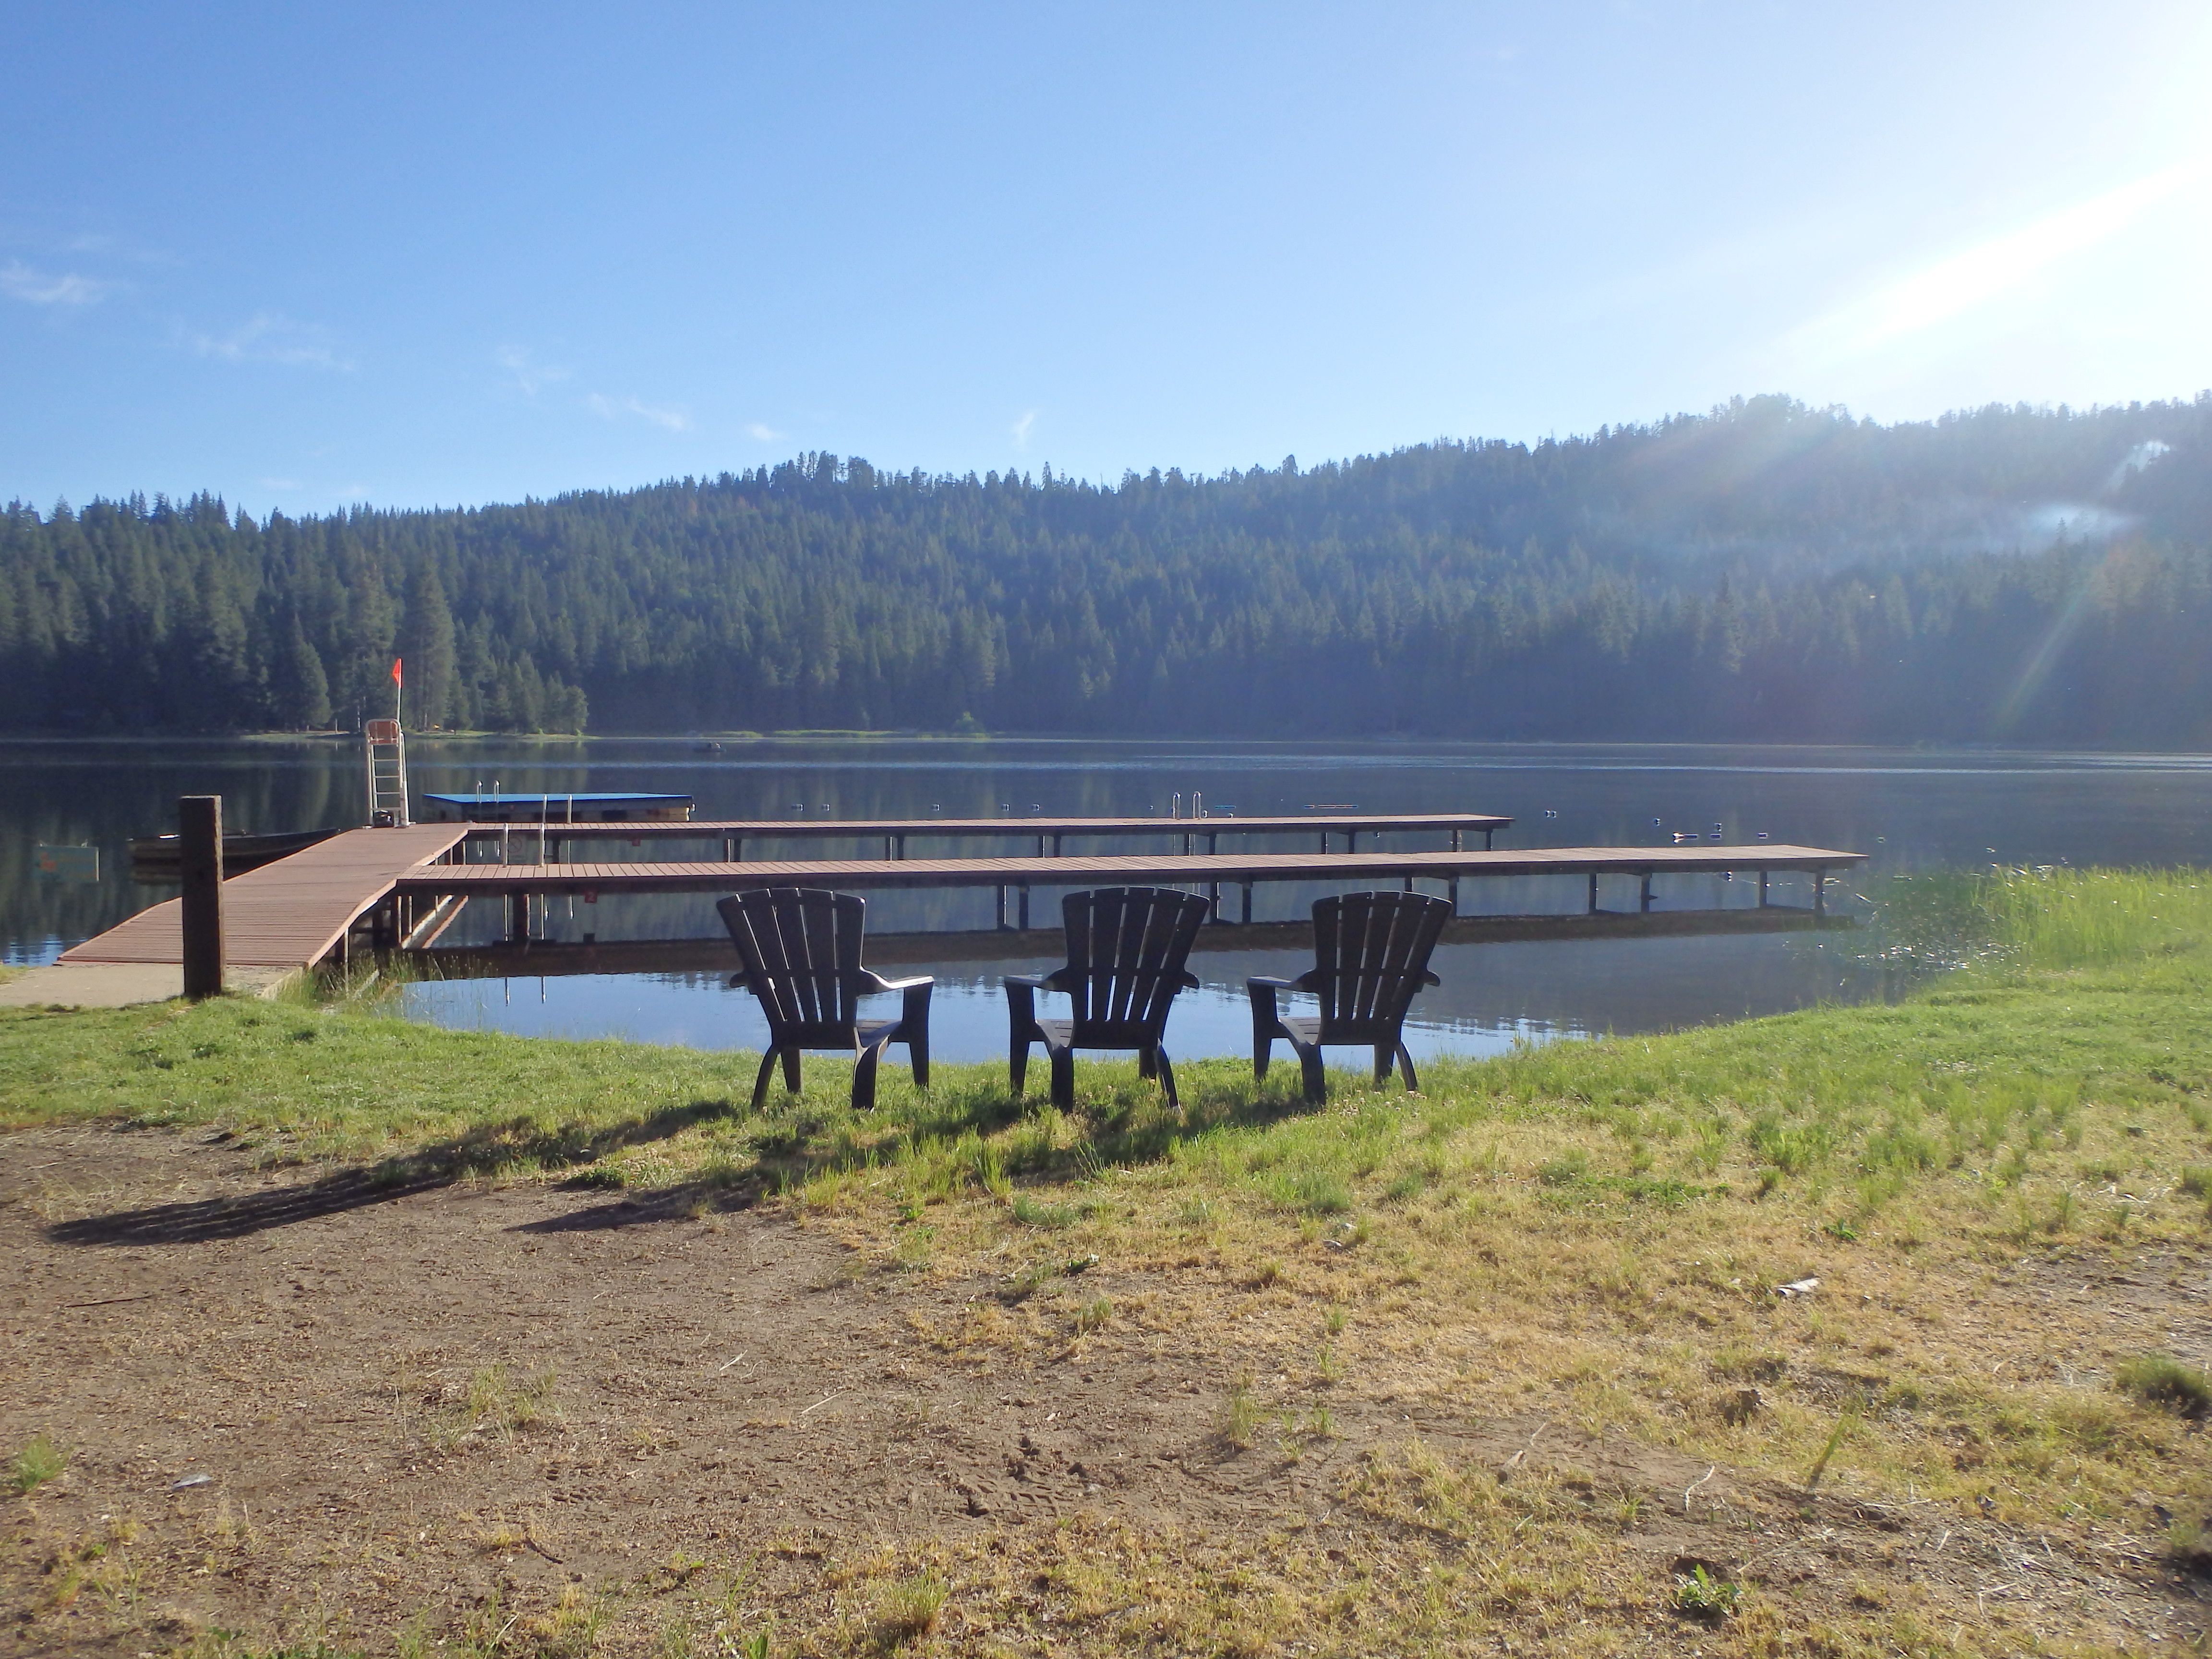 Family camp at lake sequoia a story worth telling